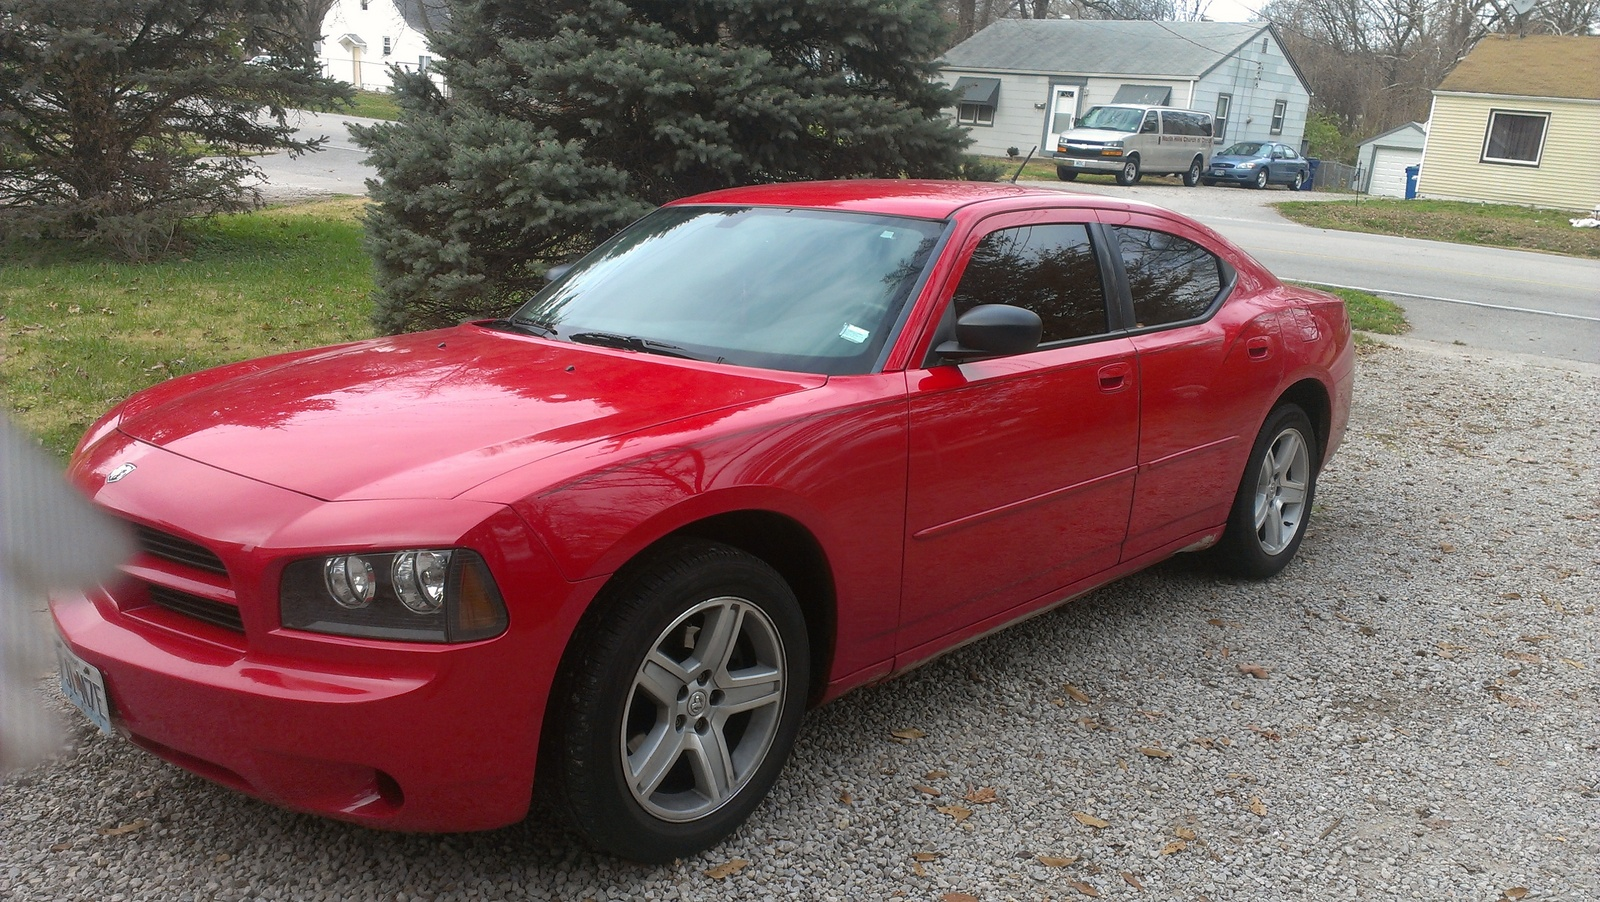 2008 Dodge Charger - Pictures - CarGurus